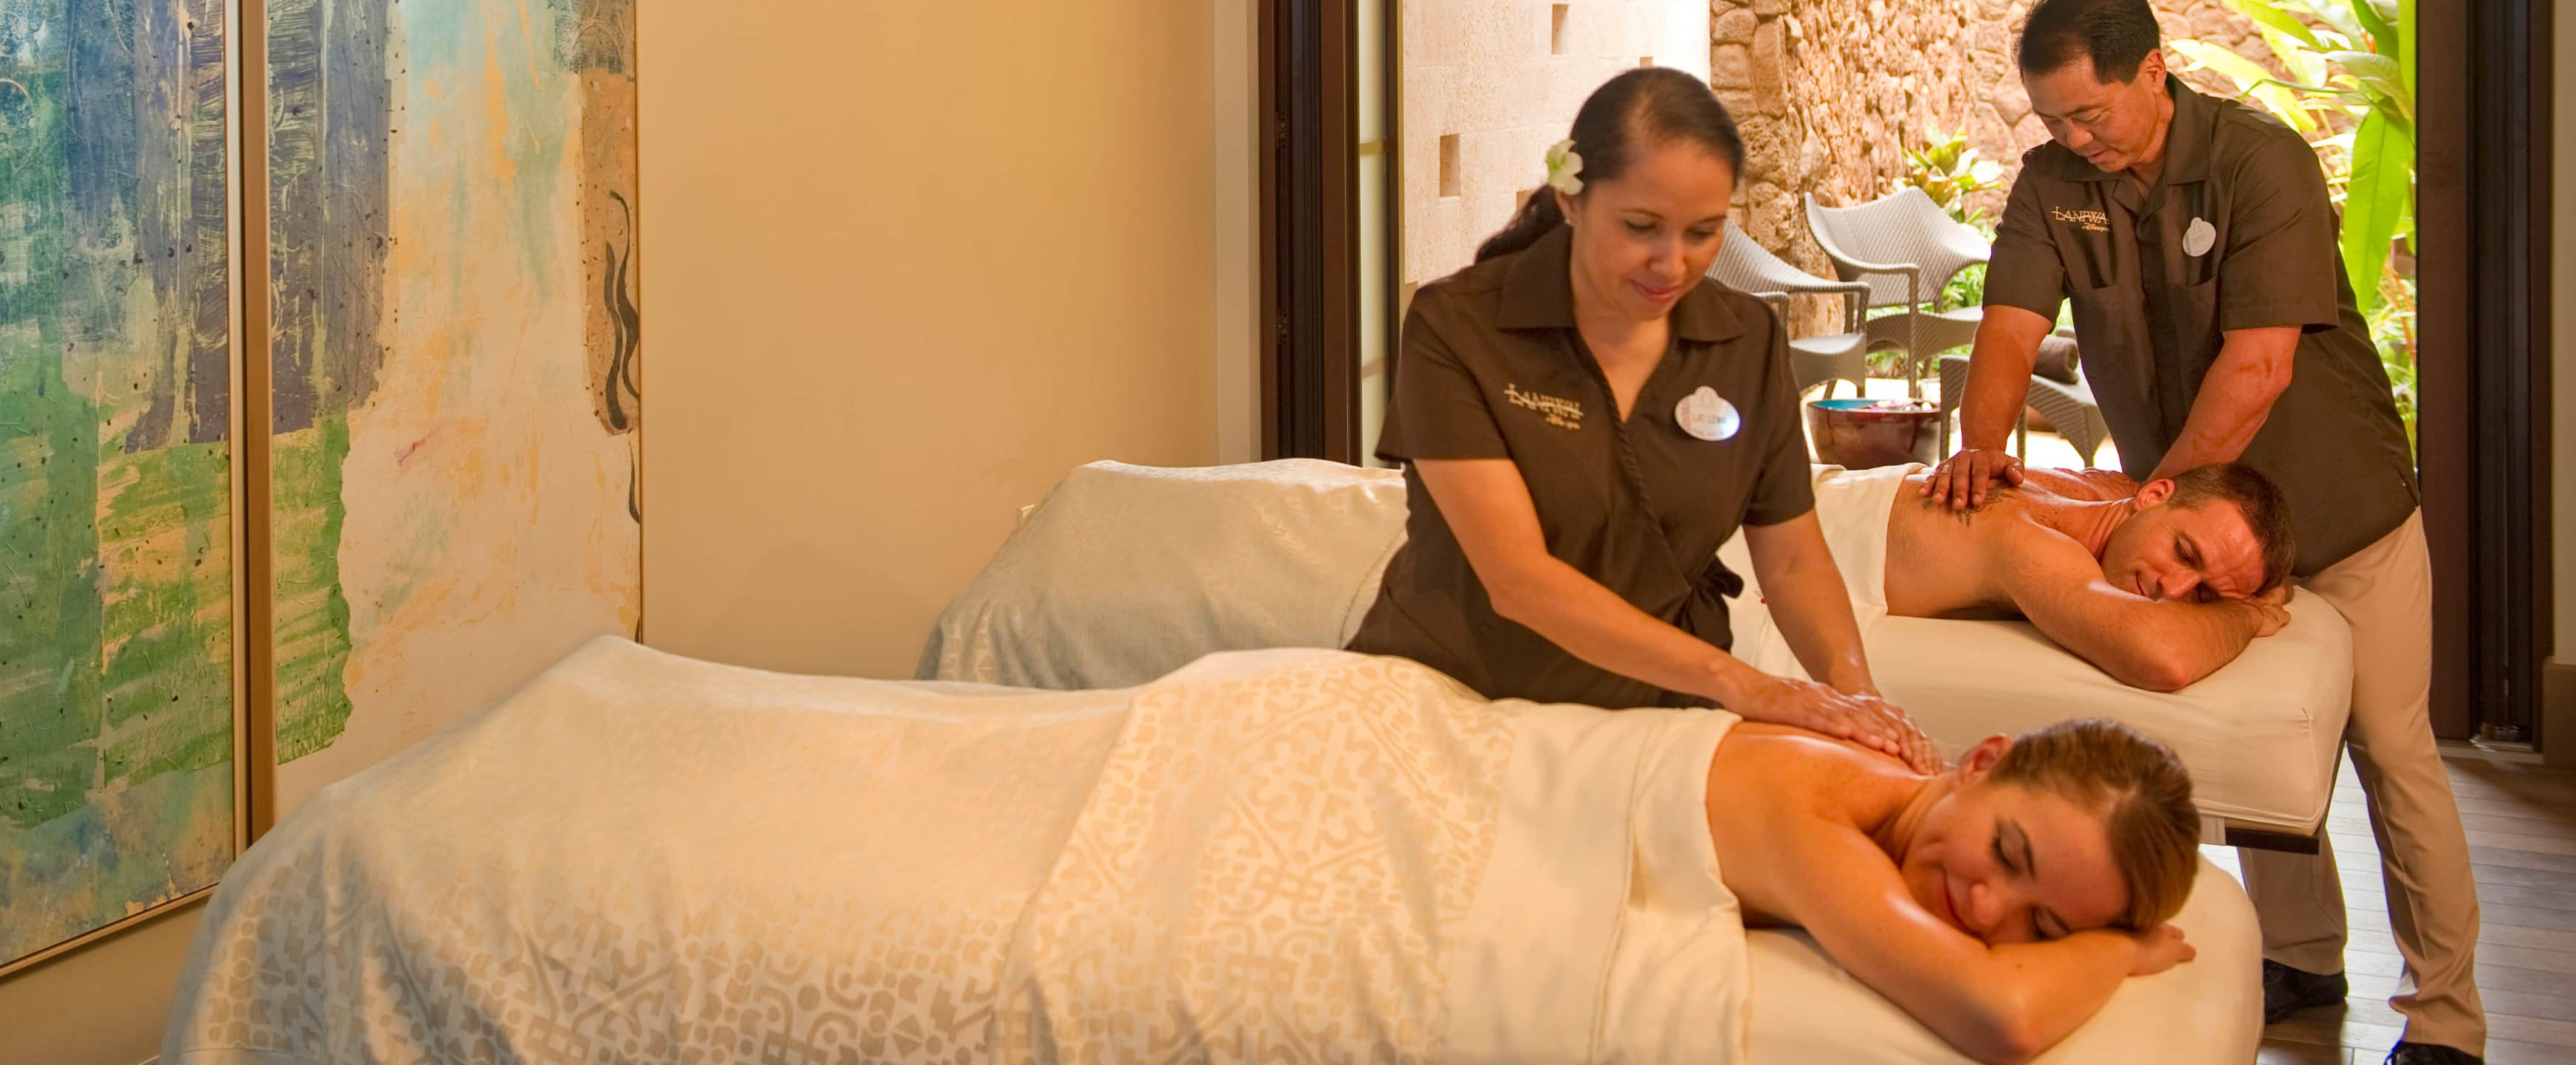 At the Laniwai spa at Aulani Resort, a man and woman relax as they receive massages in side by side beds